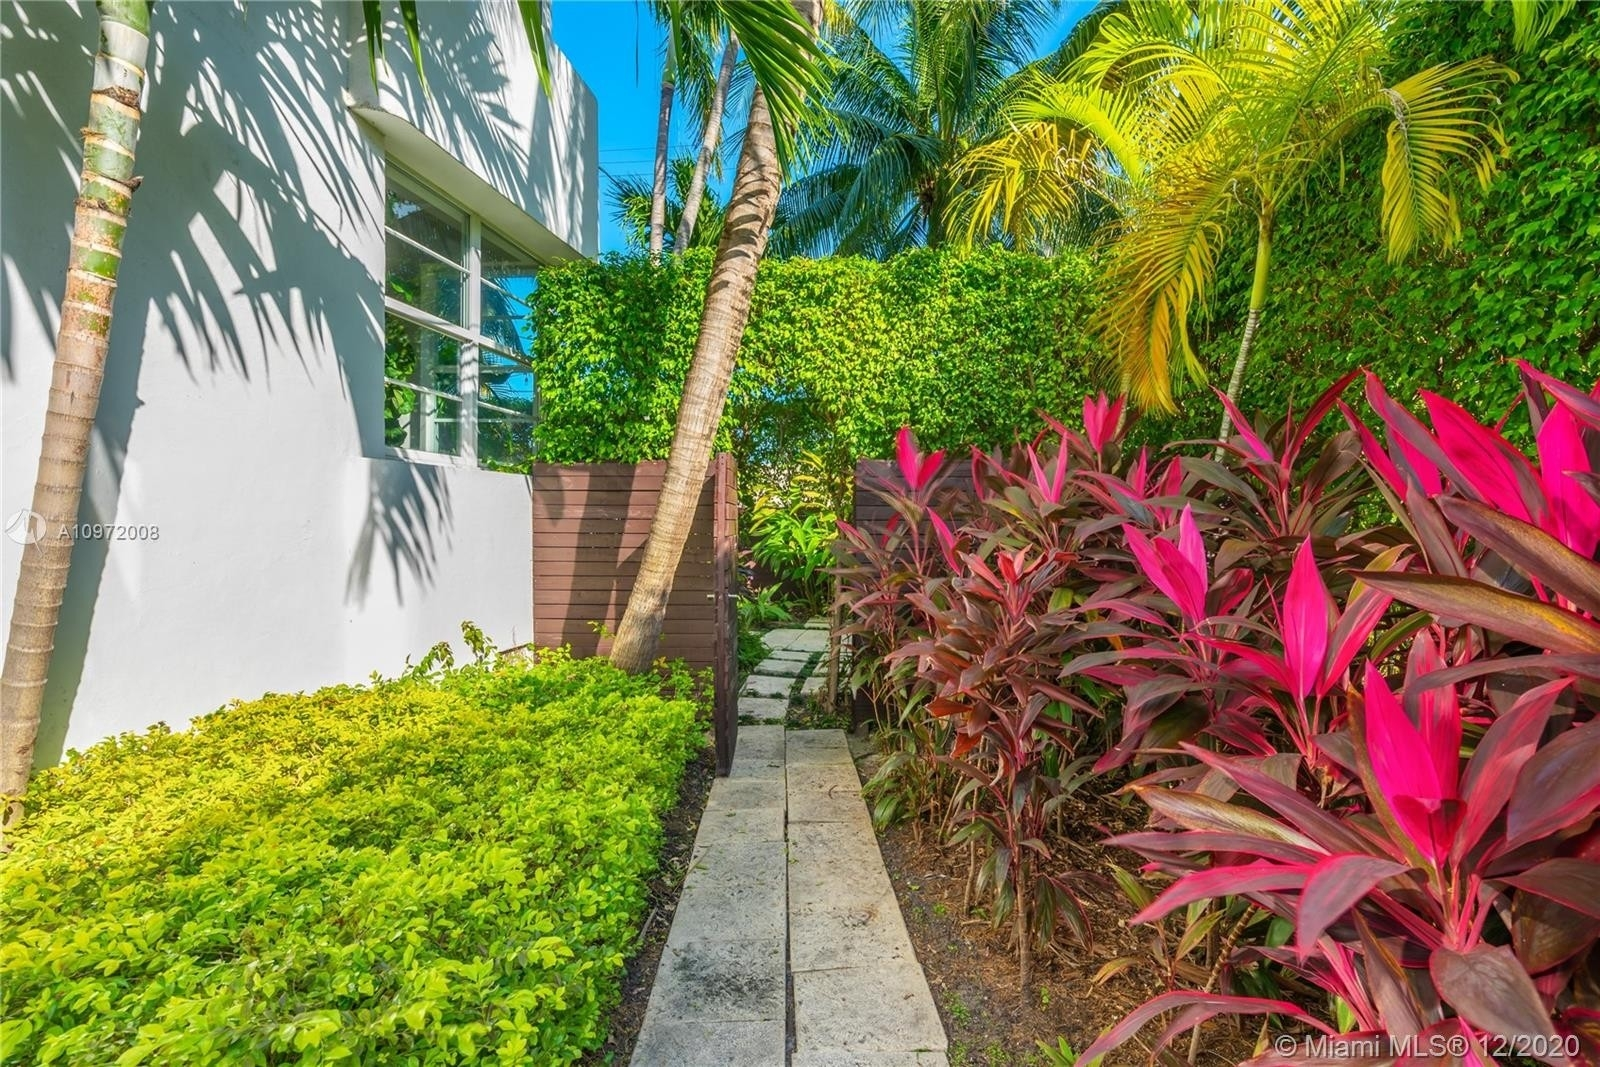 9. Condominiums for Sale at 1435 West Ave , 1 South Beach, Miami Beach, FL 33139